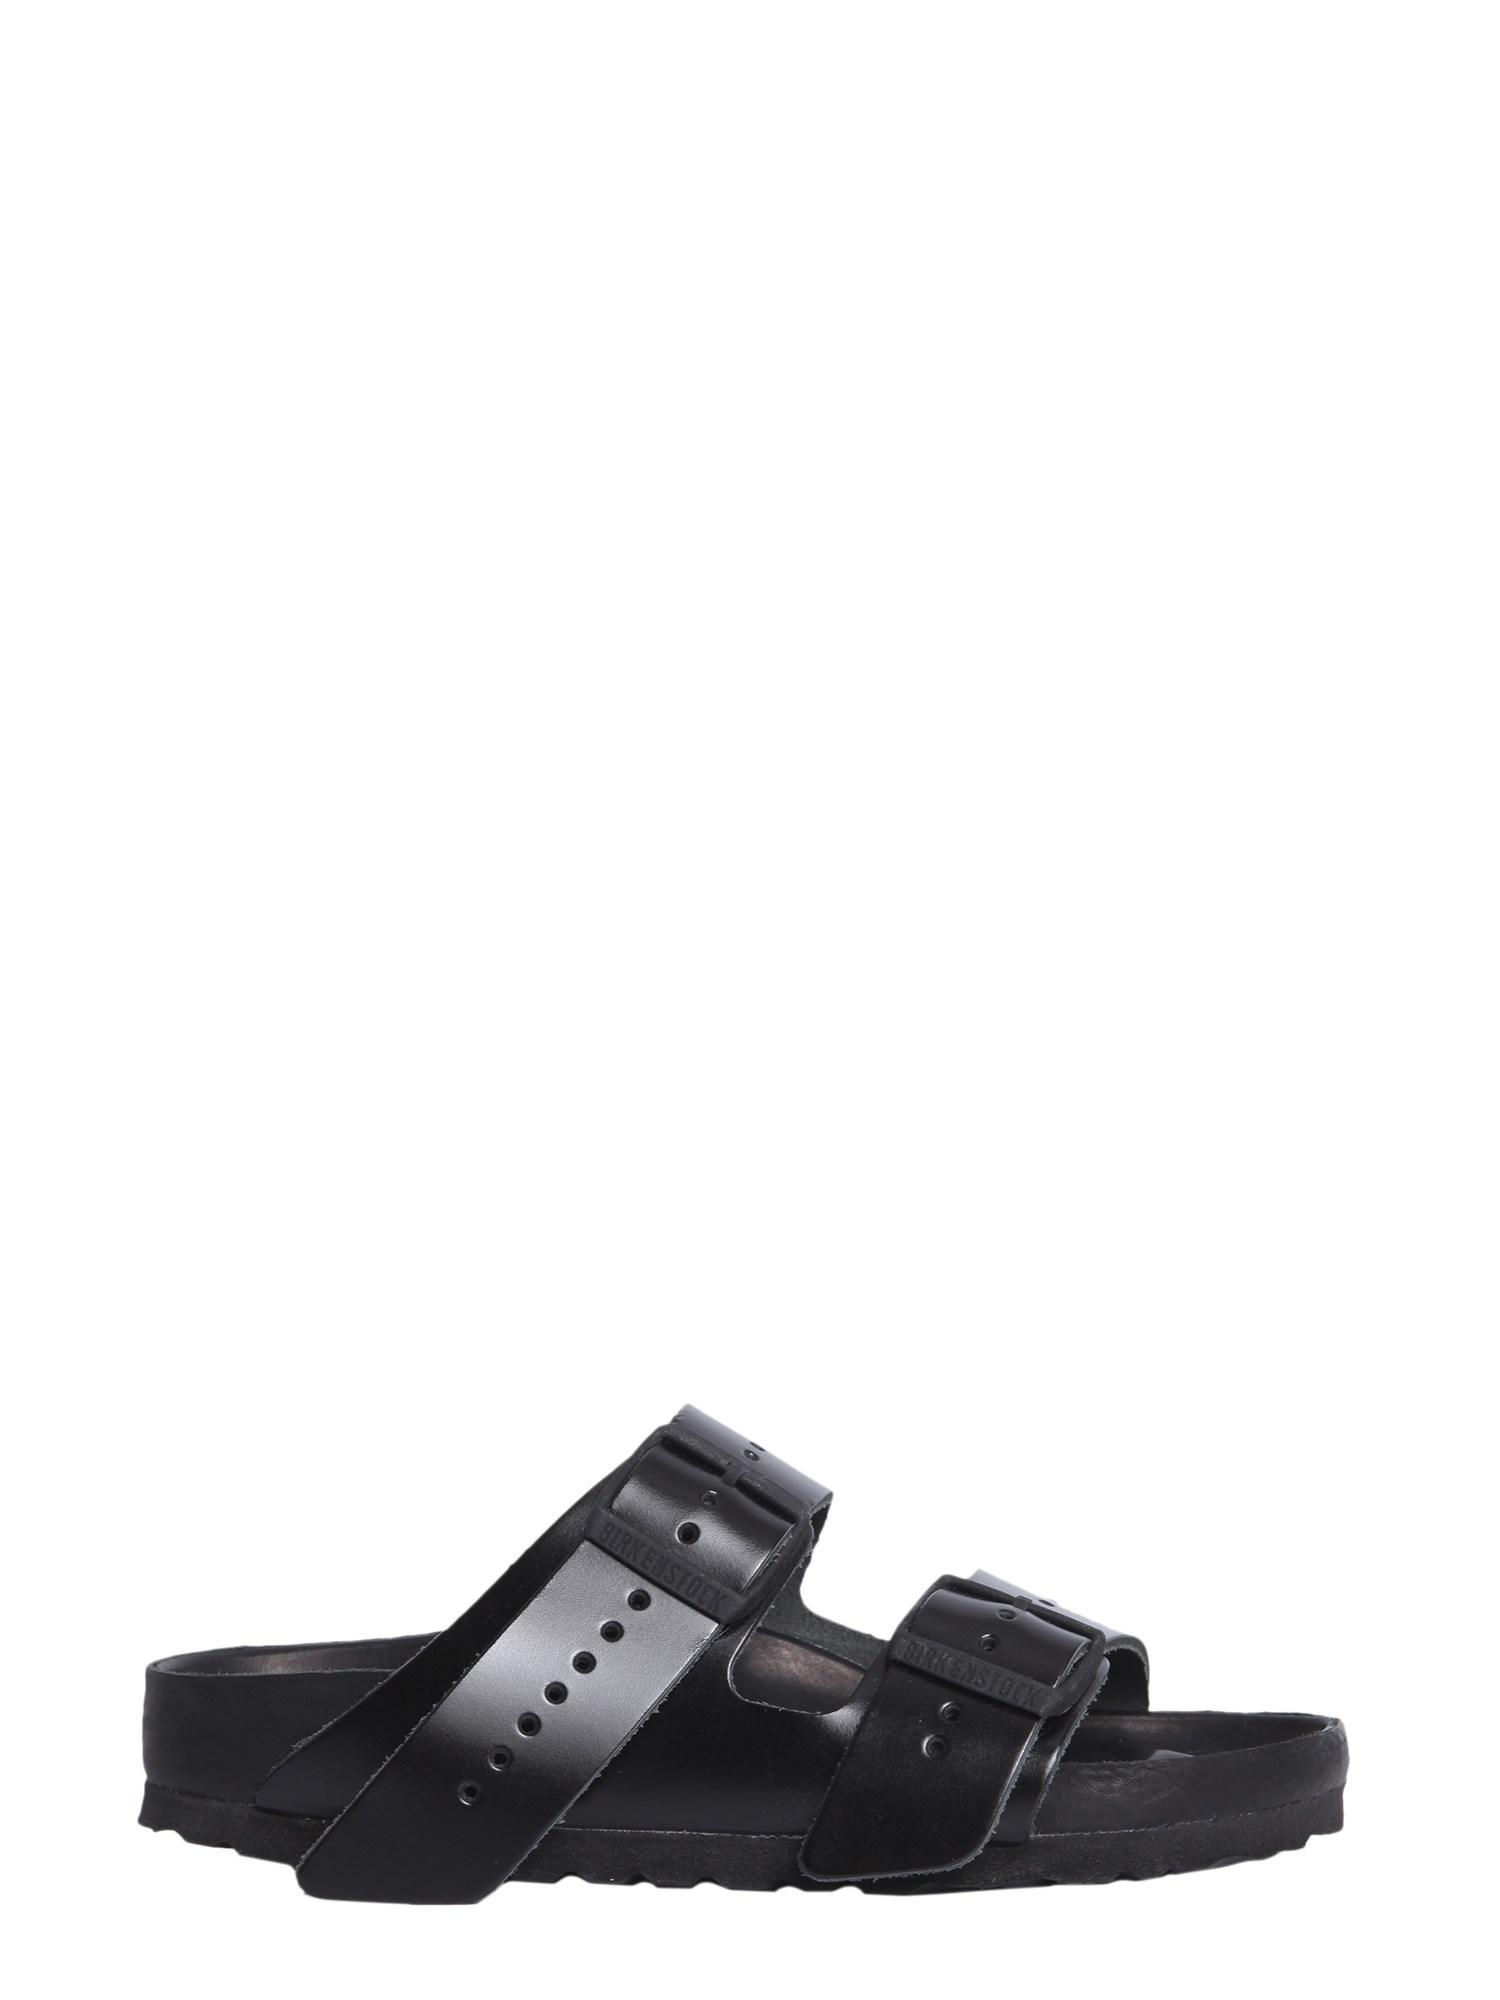 2a1d437995 Rick Owens Black Birkenstock Edition Leather Arizona Sandals in ...